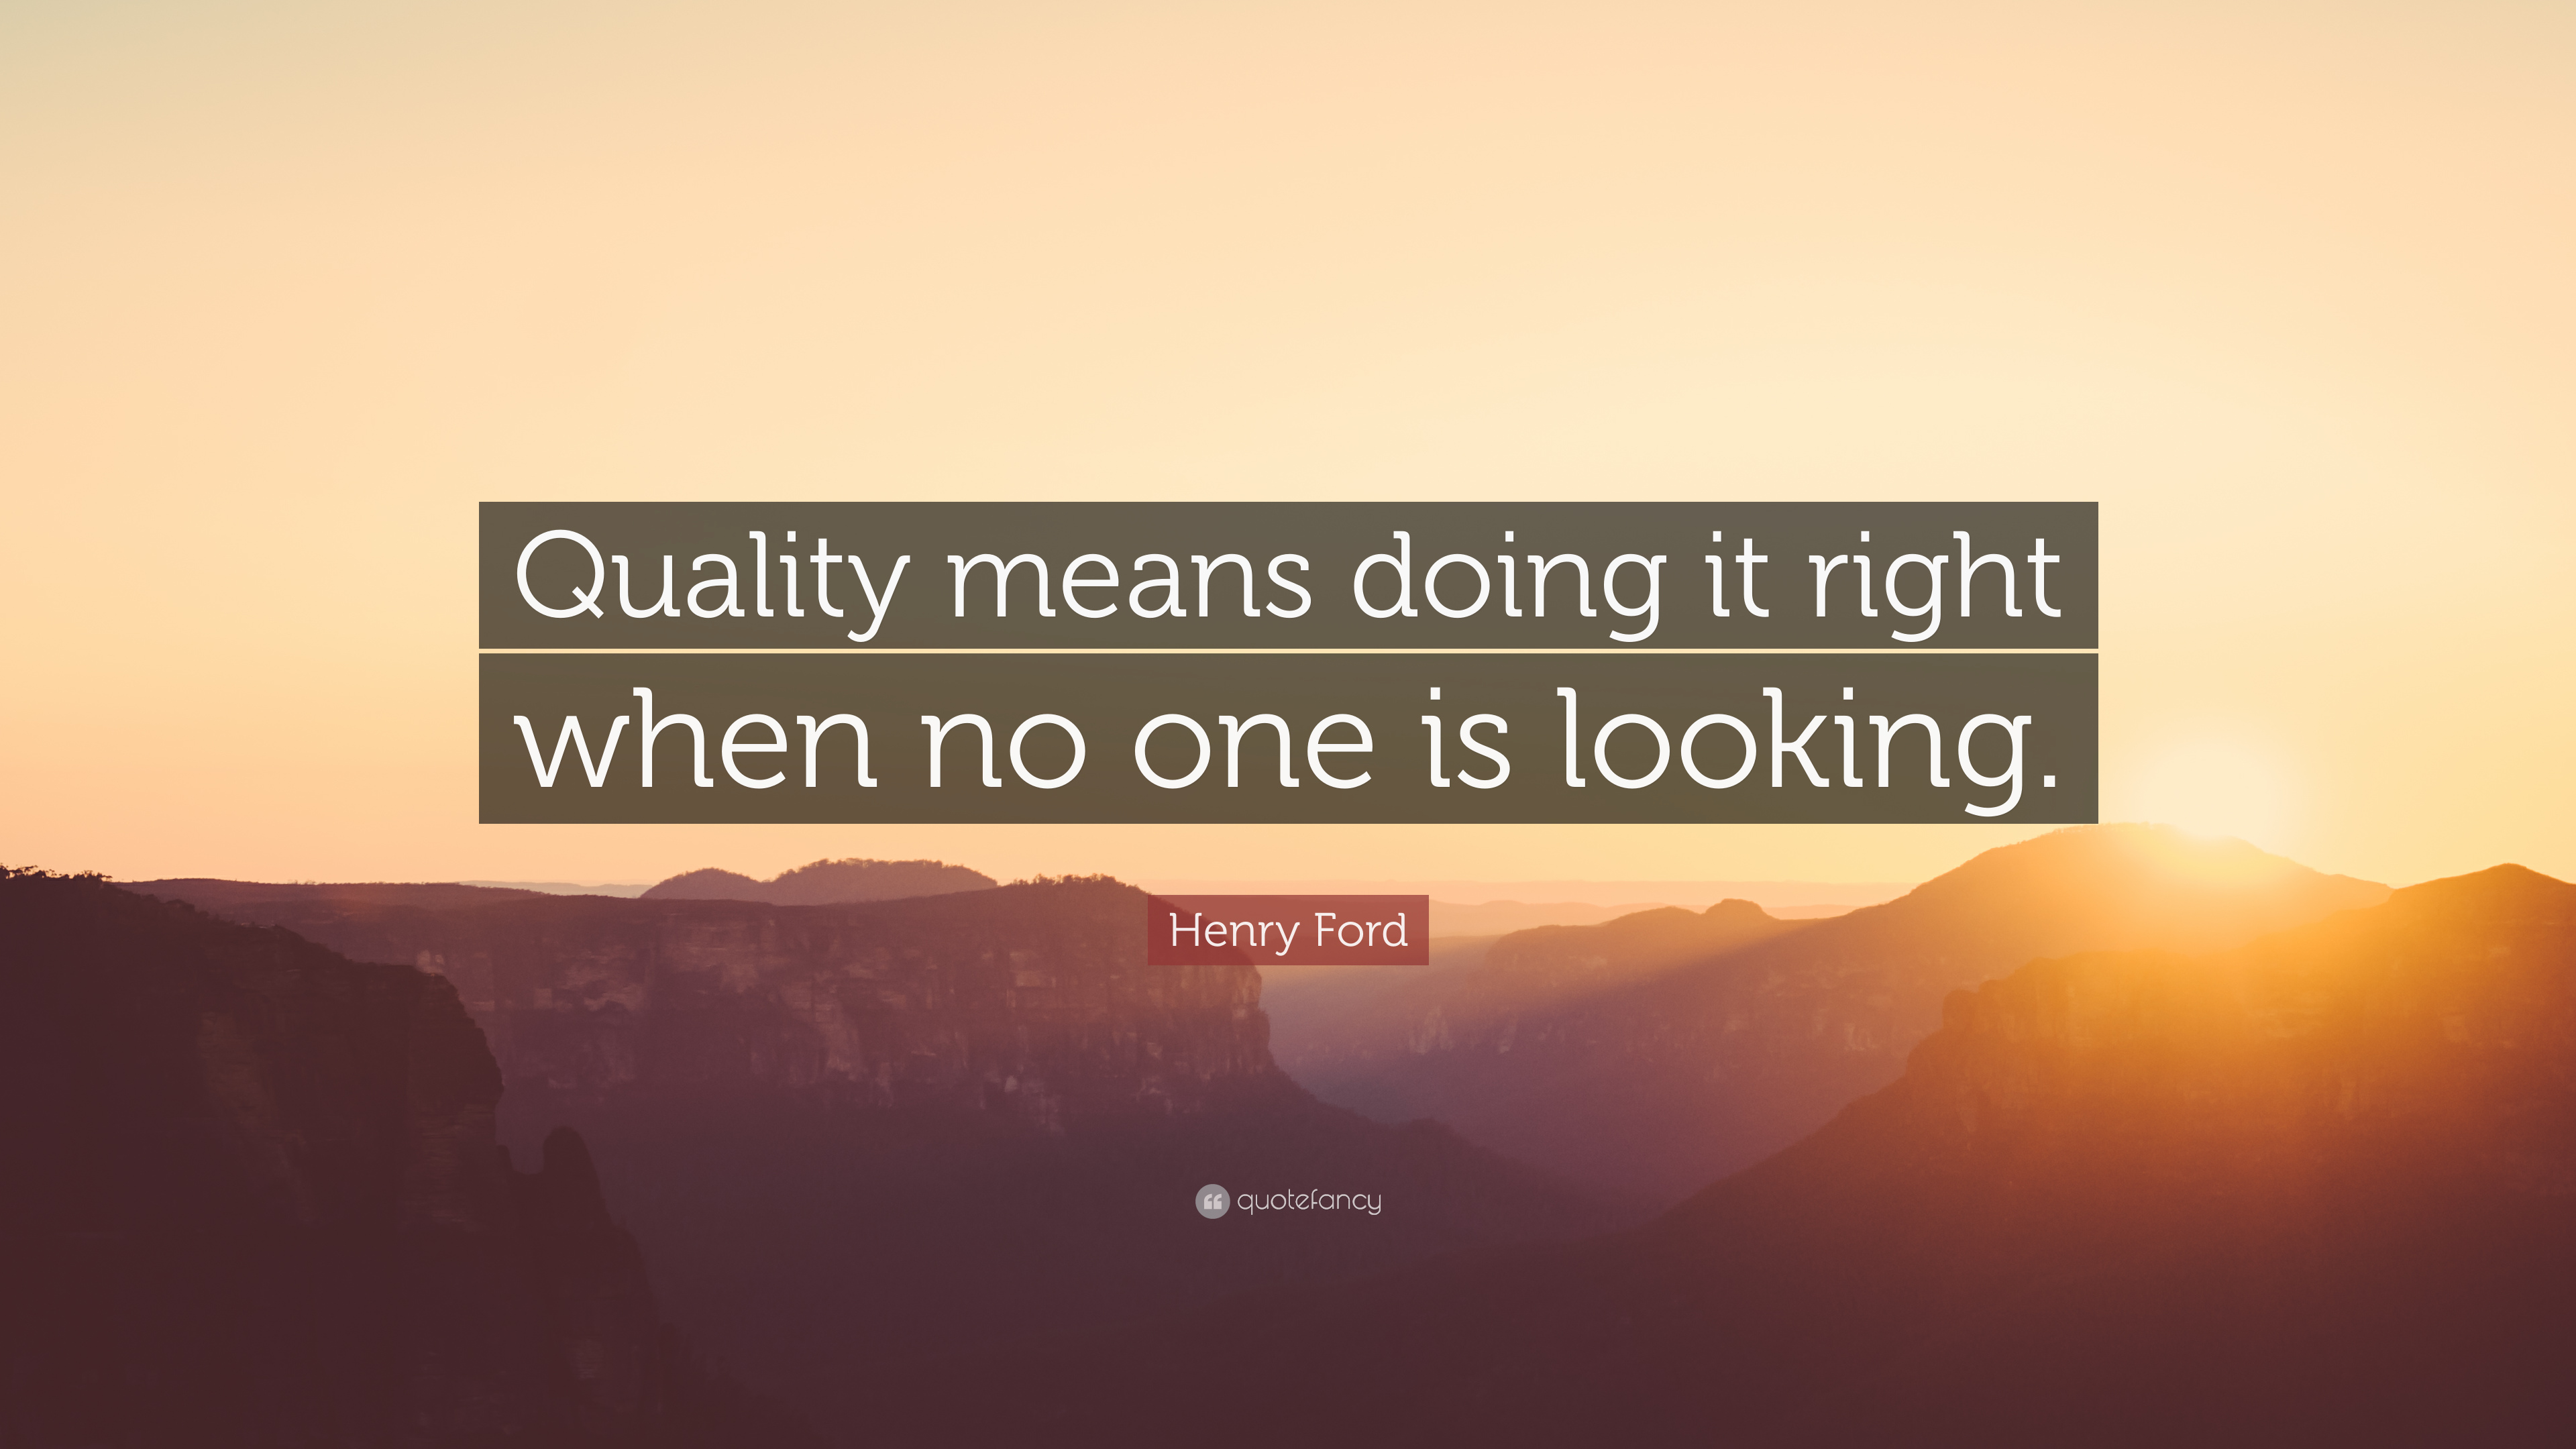 Henry Ford Quote Quality Means Doing It Right When No One Is